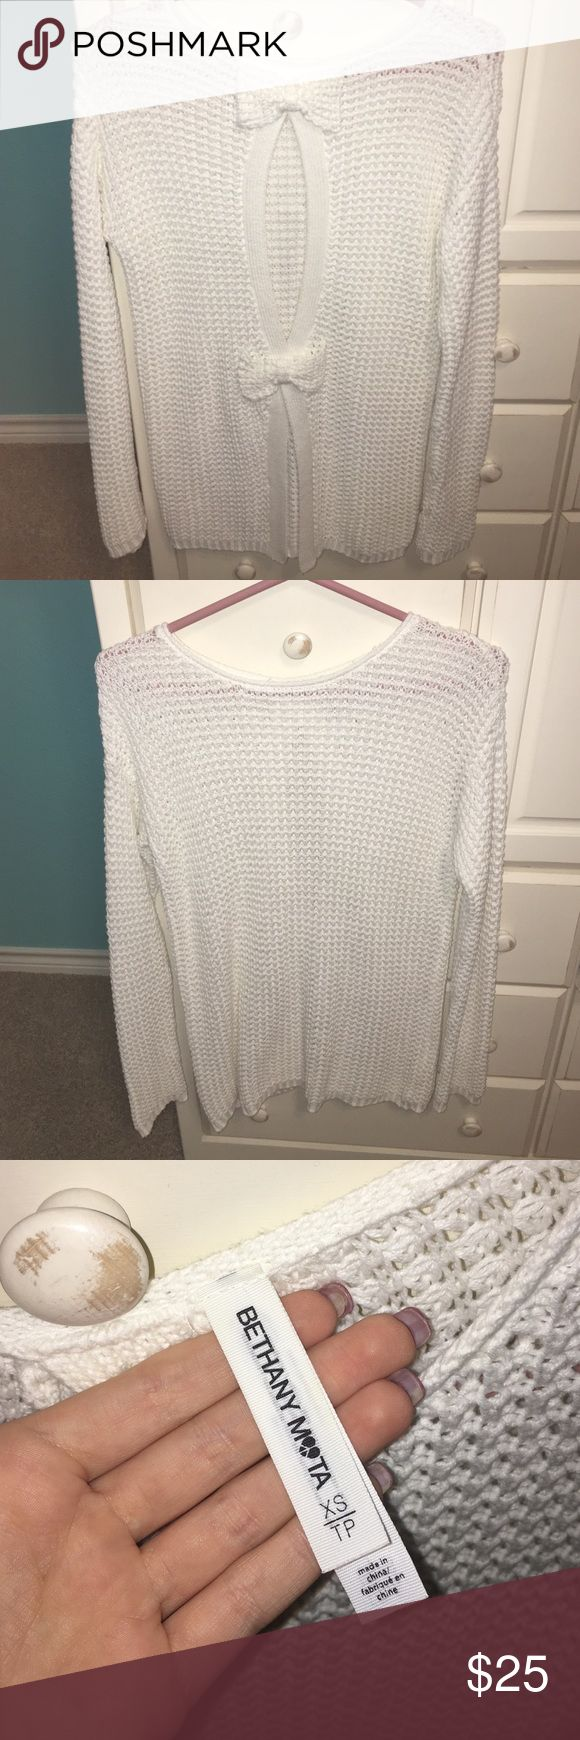 Aeropostale x Bethany Mota Sweater Adorable white sweater with bow detailed back. (Cover photo is the back). From the limited edition Bethany Mota Collection. Aeropostale Sweaters Crew & Scoop Necks